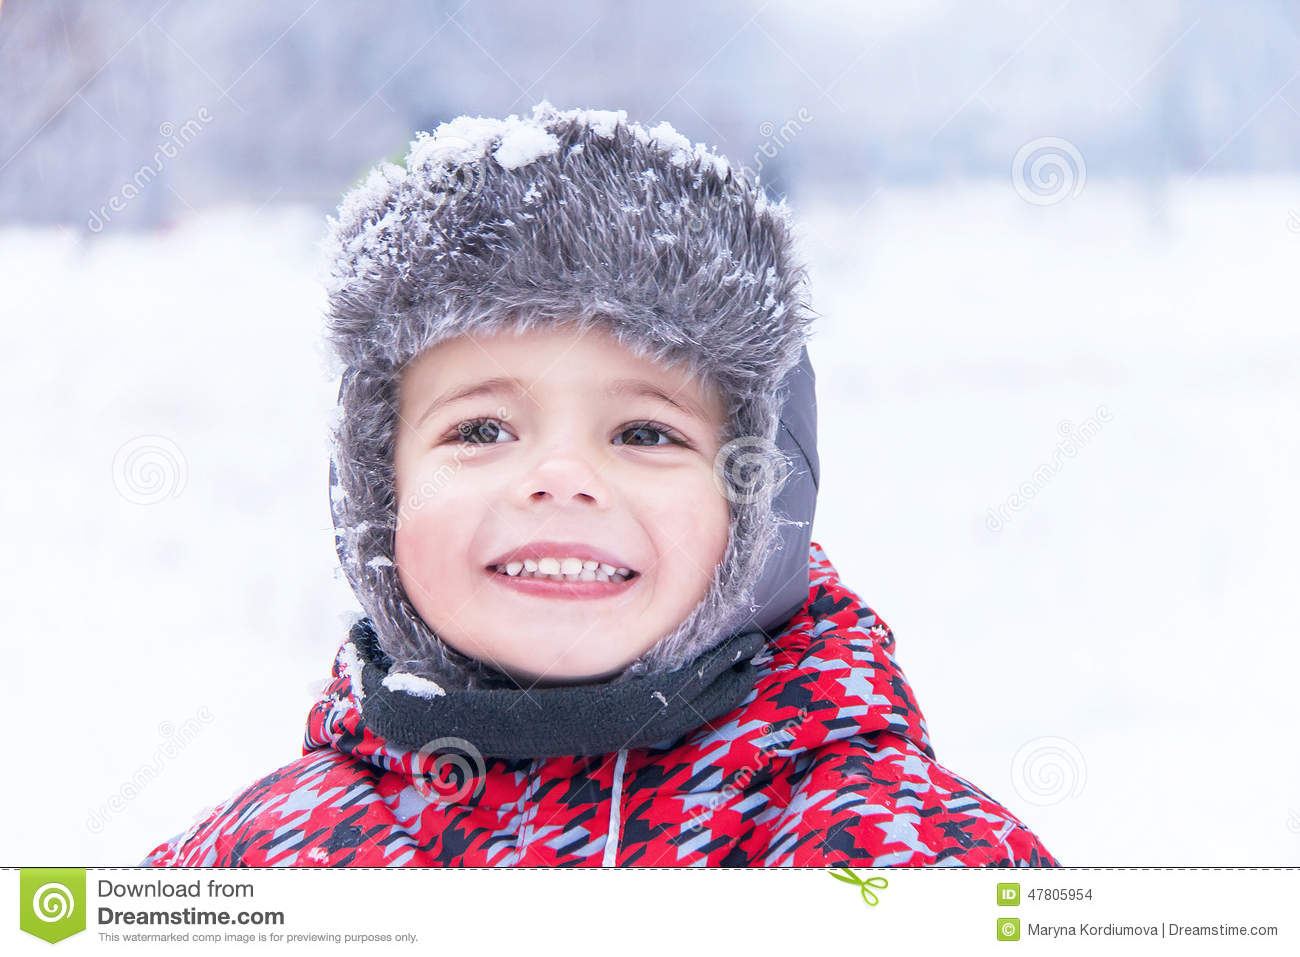 Snow child the feminist viewpoint